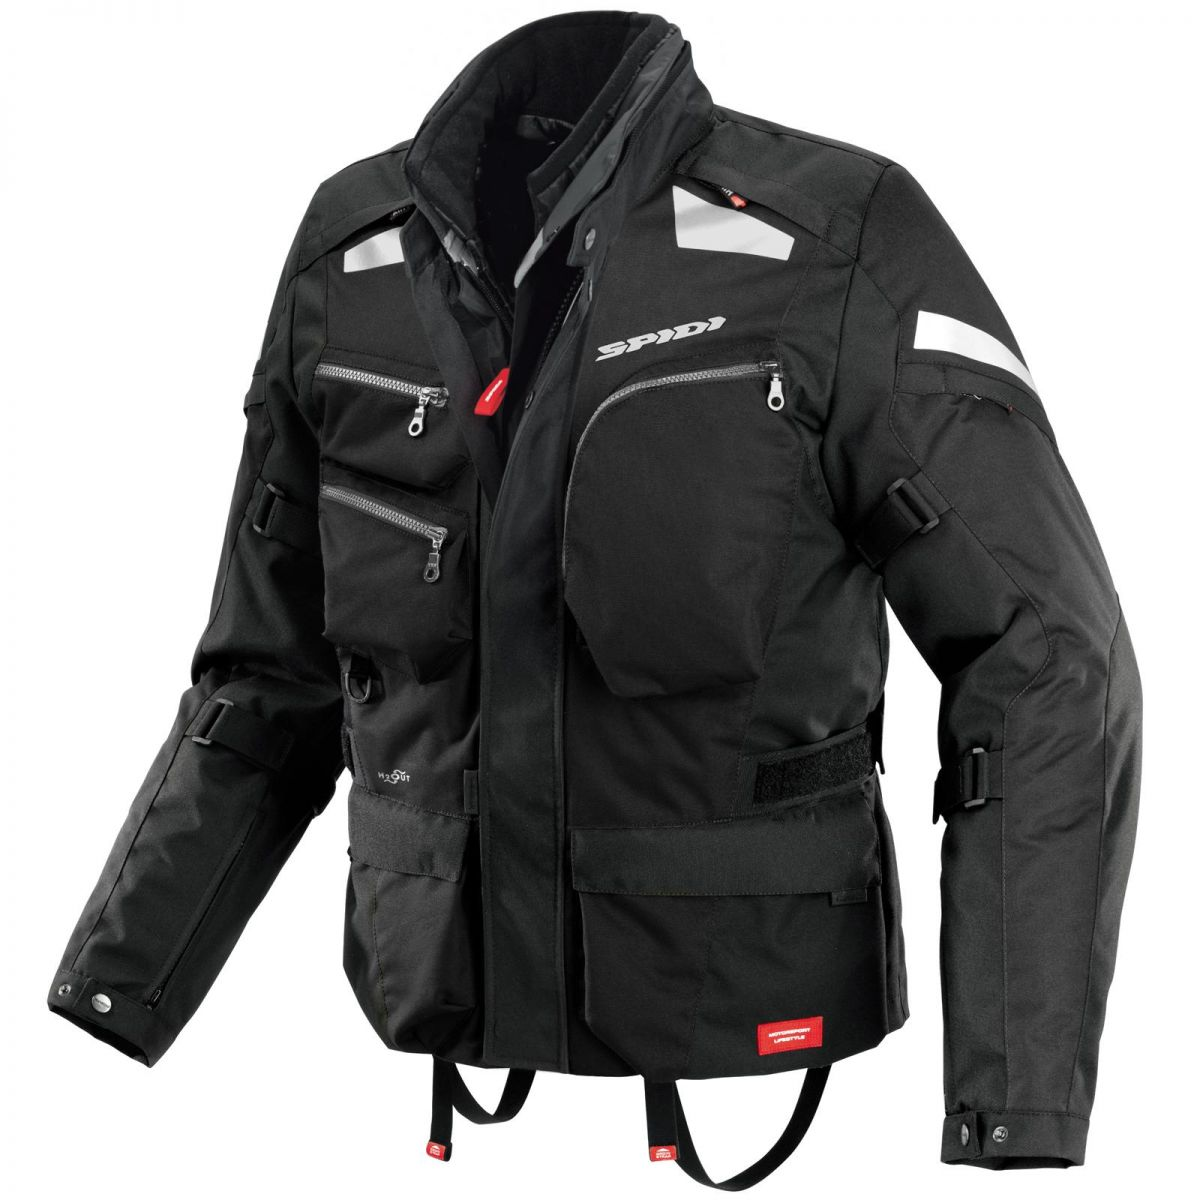 Jaqueta Spidi Voyager 3 H2Out Dark ( Big Trail ) - SUPEROFERTA!